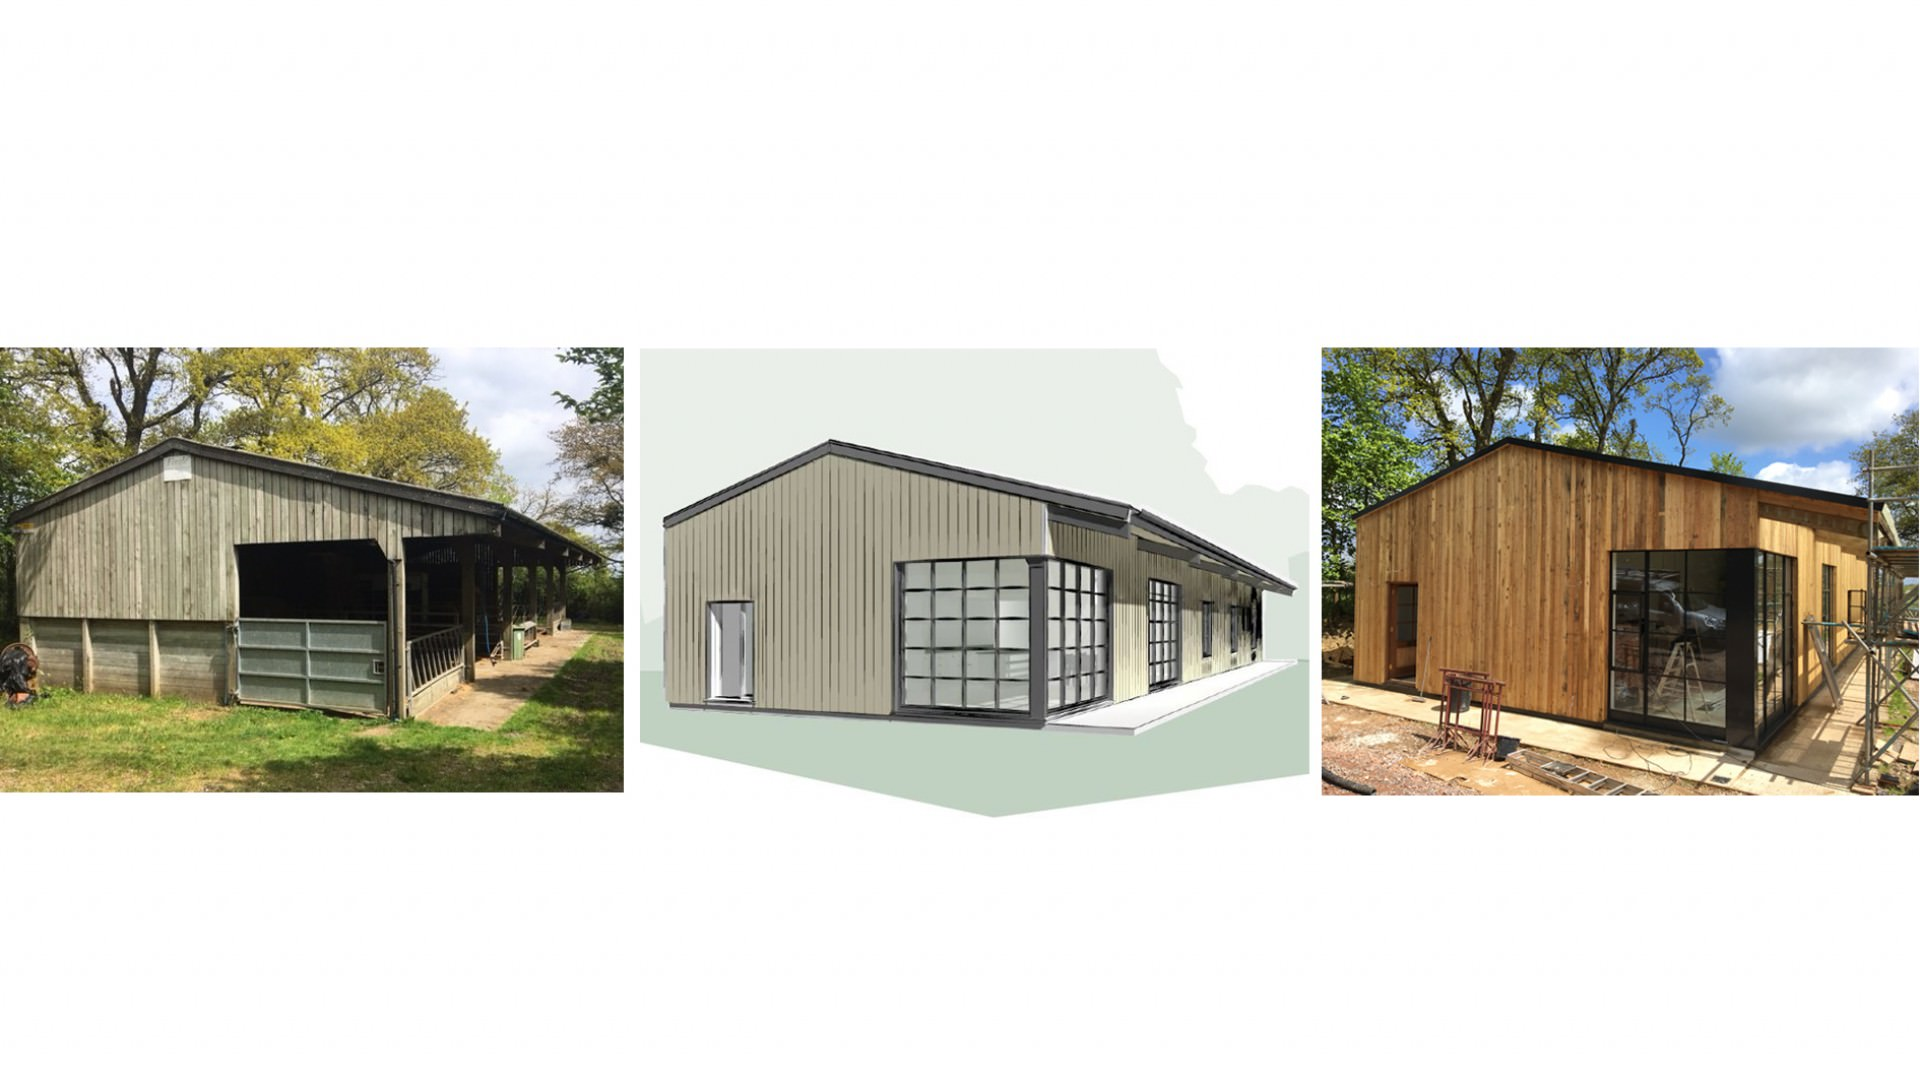 6 barn sketch conversion